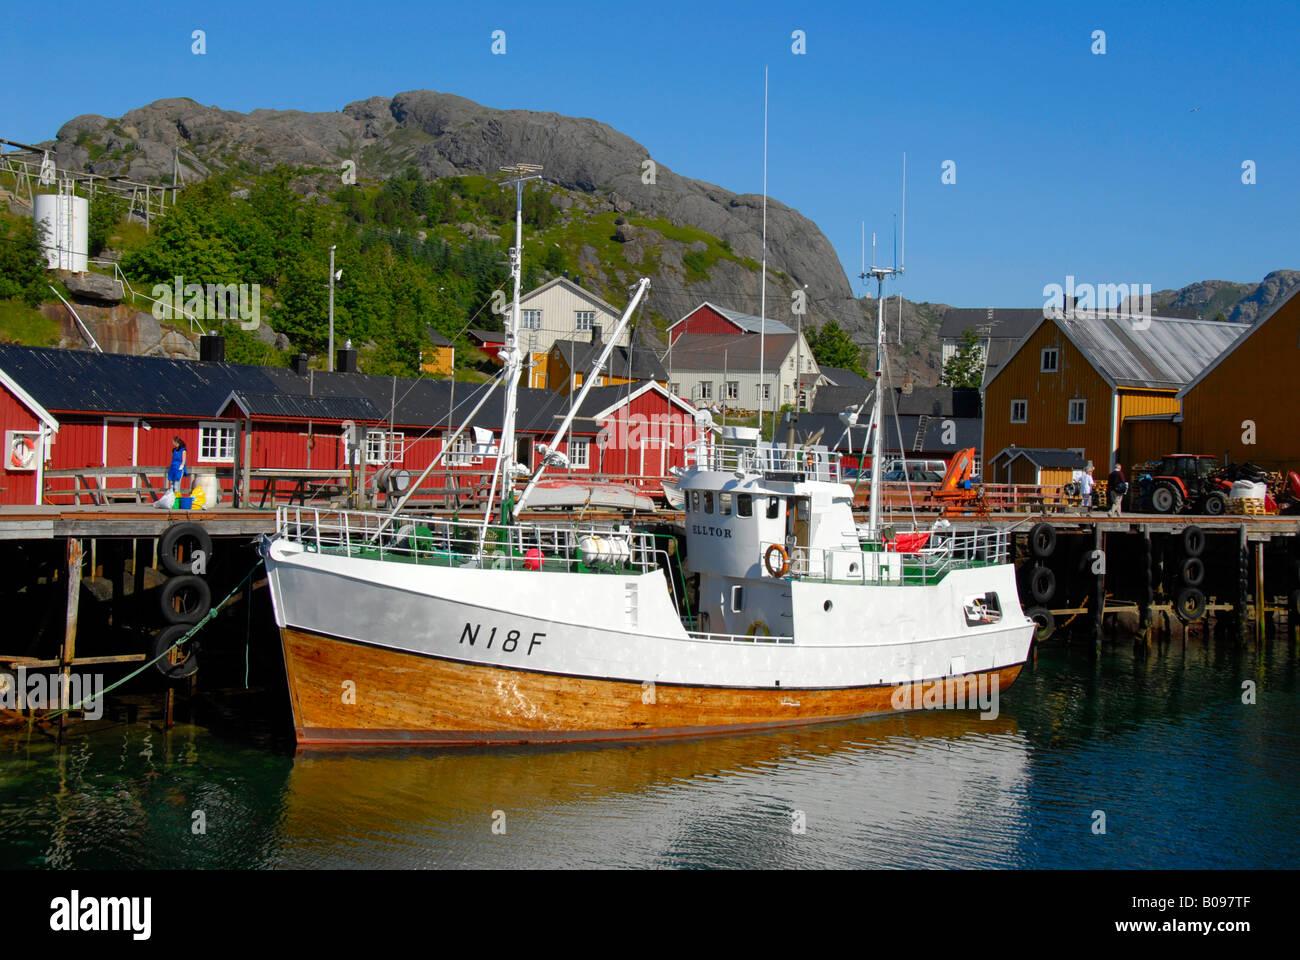 Wooden fishing boat tied up to a jetty and red wooden 'rorbu' houses in Nusfjord, Lofoten Archipelago, Norway, - Stock Image